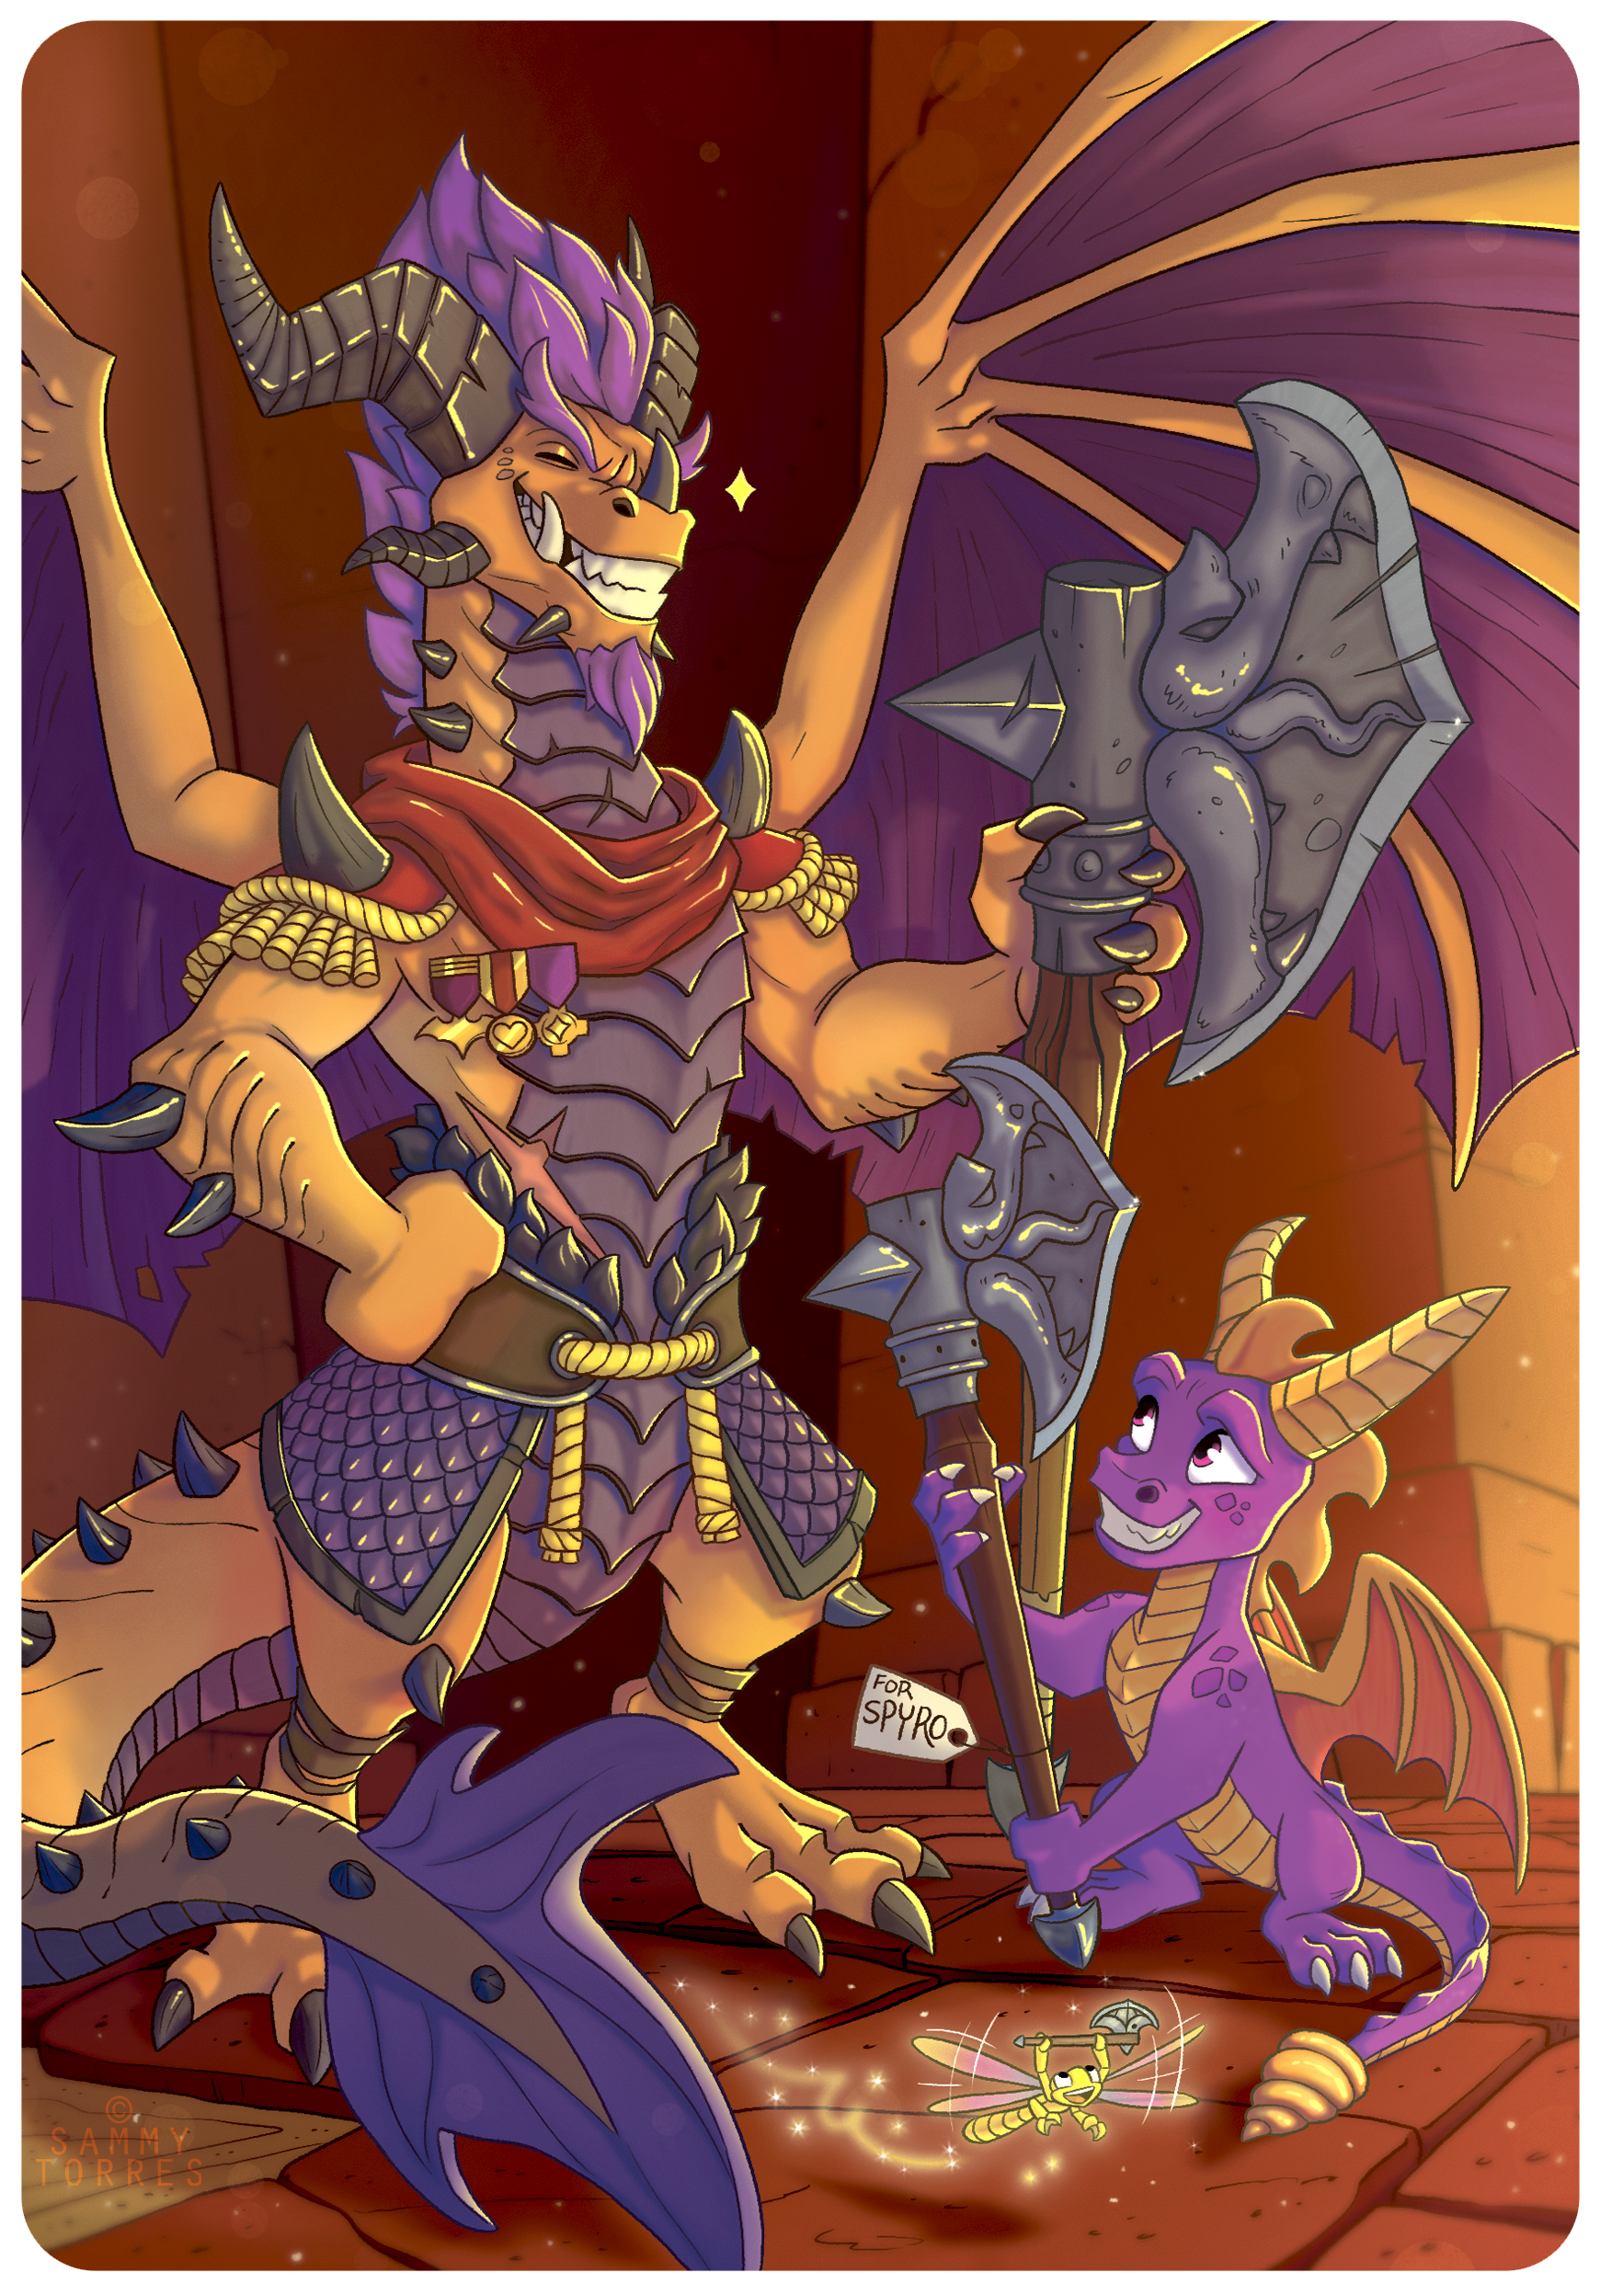 Spyro and Titan